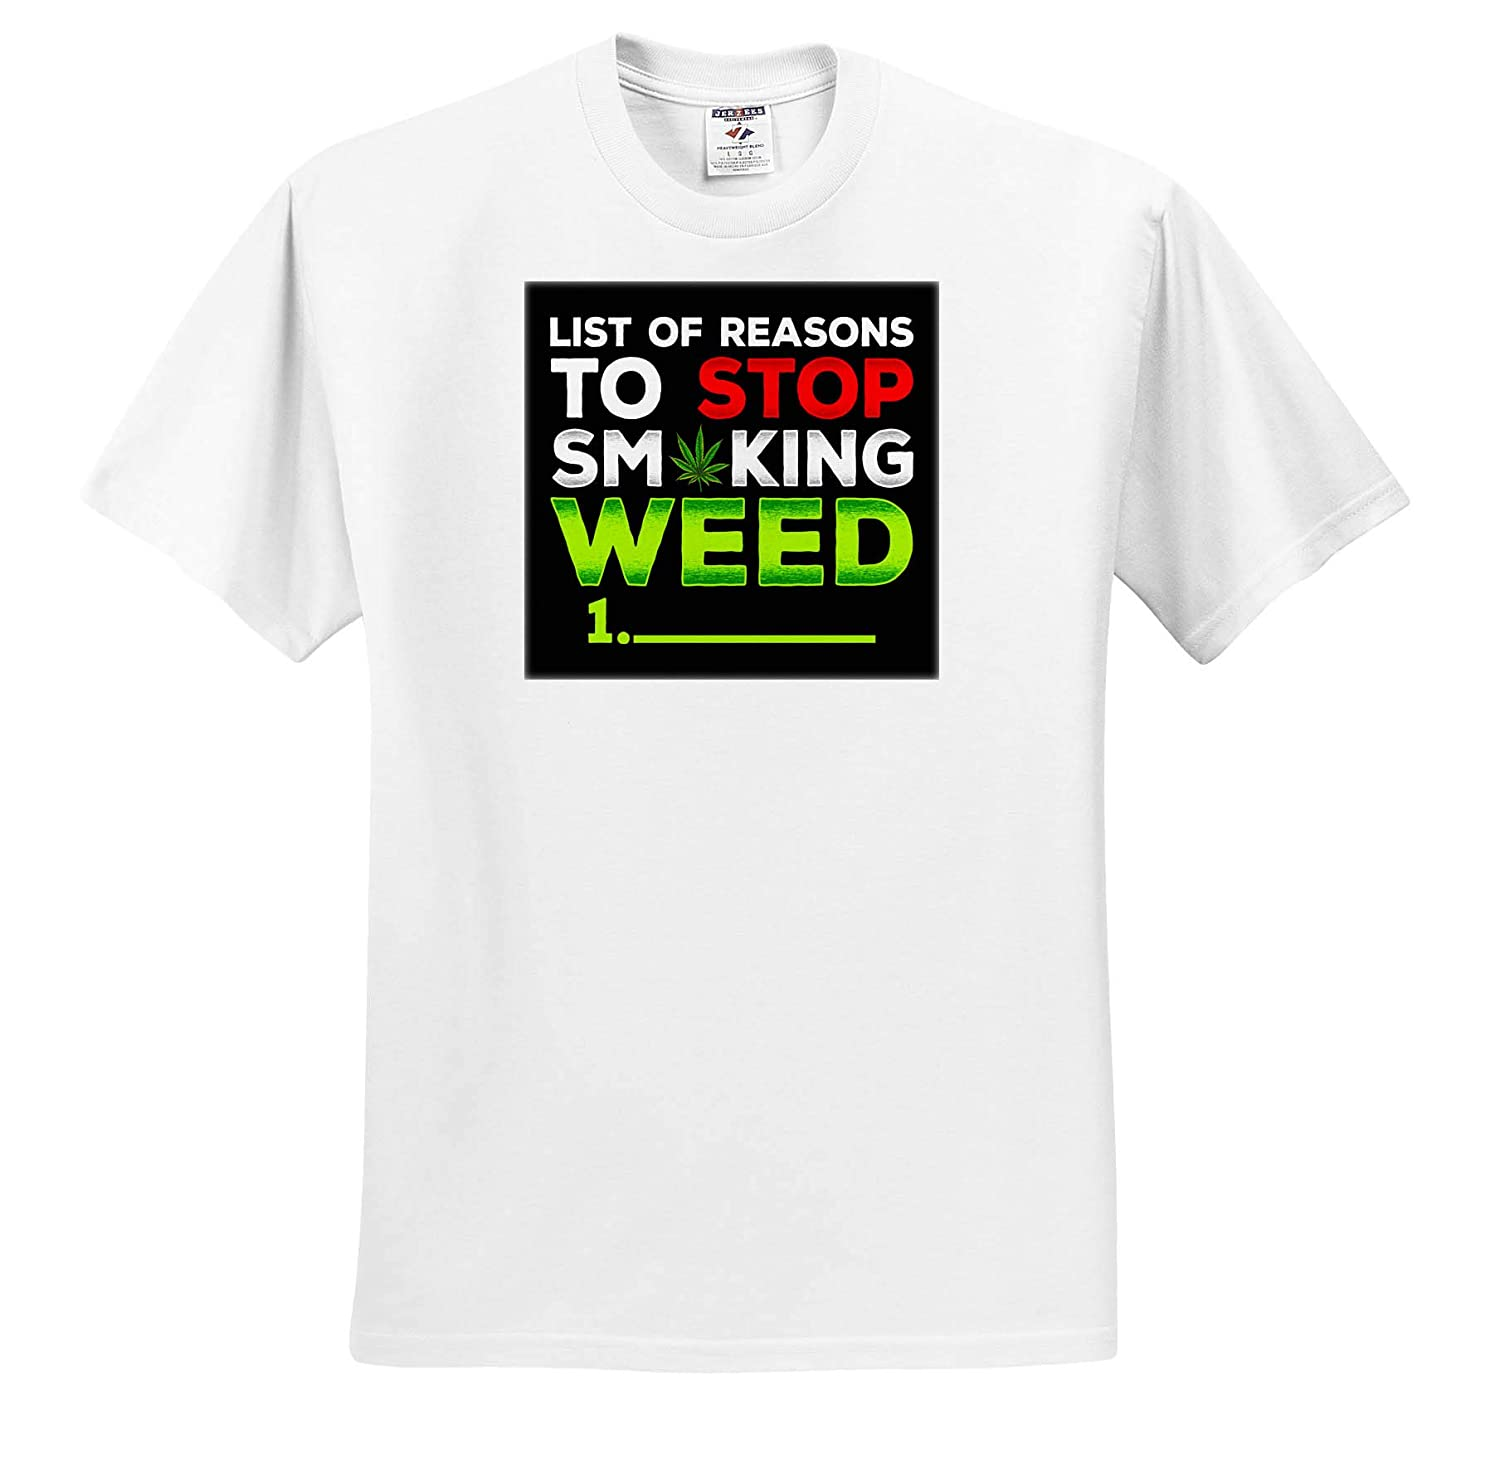 3dRose Sven Herkenrath Weed T-Shirts List of Reasons to Stop Smoking Weeds Funny Quotes Cannabis